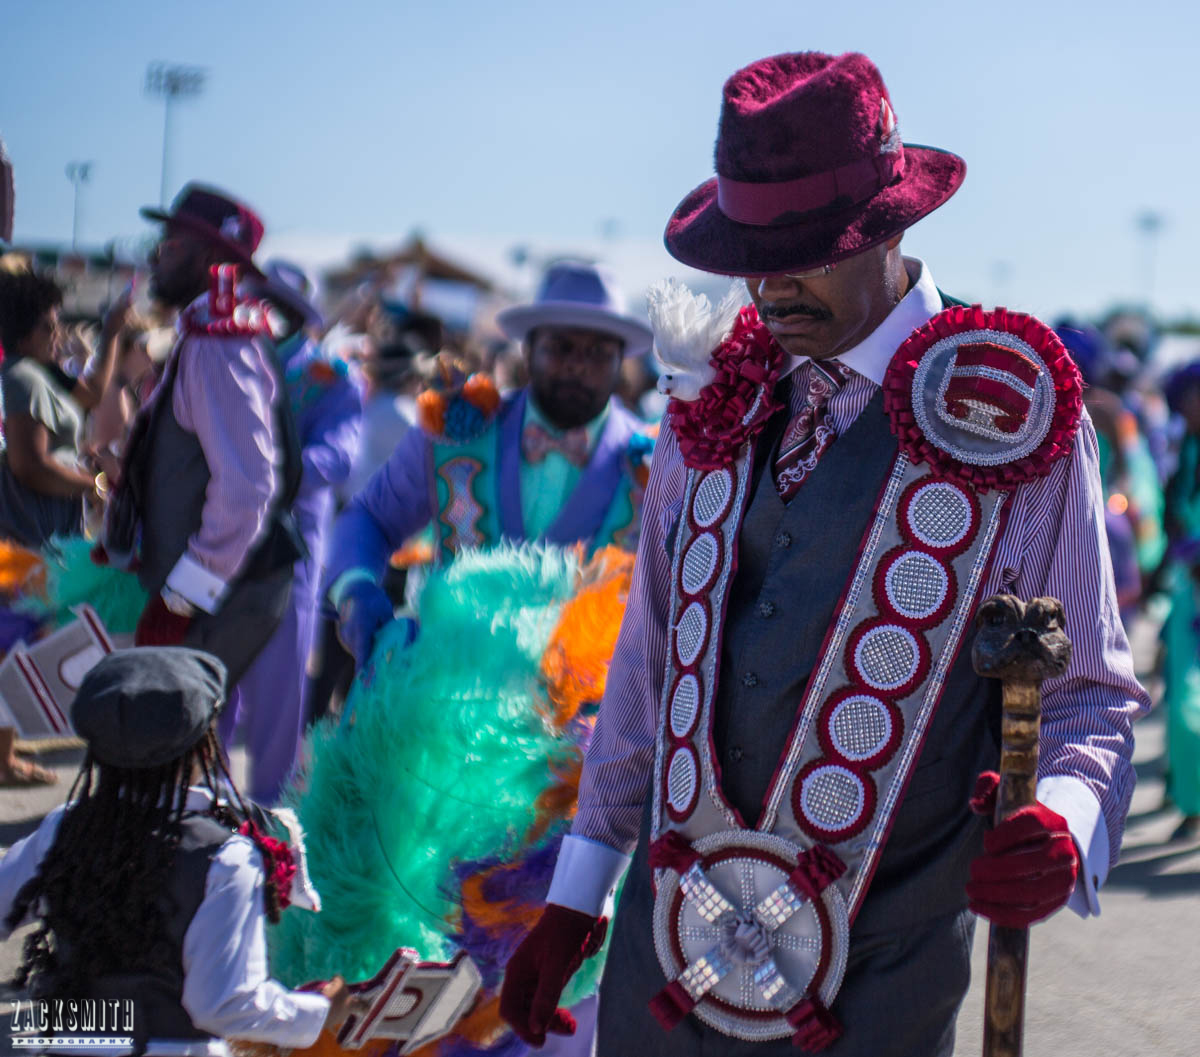 I saw fine threaded fellas doing the Second Line